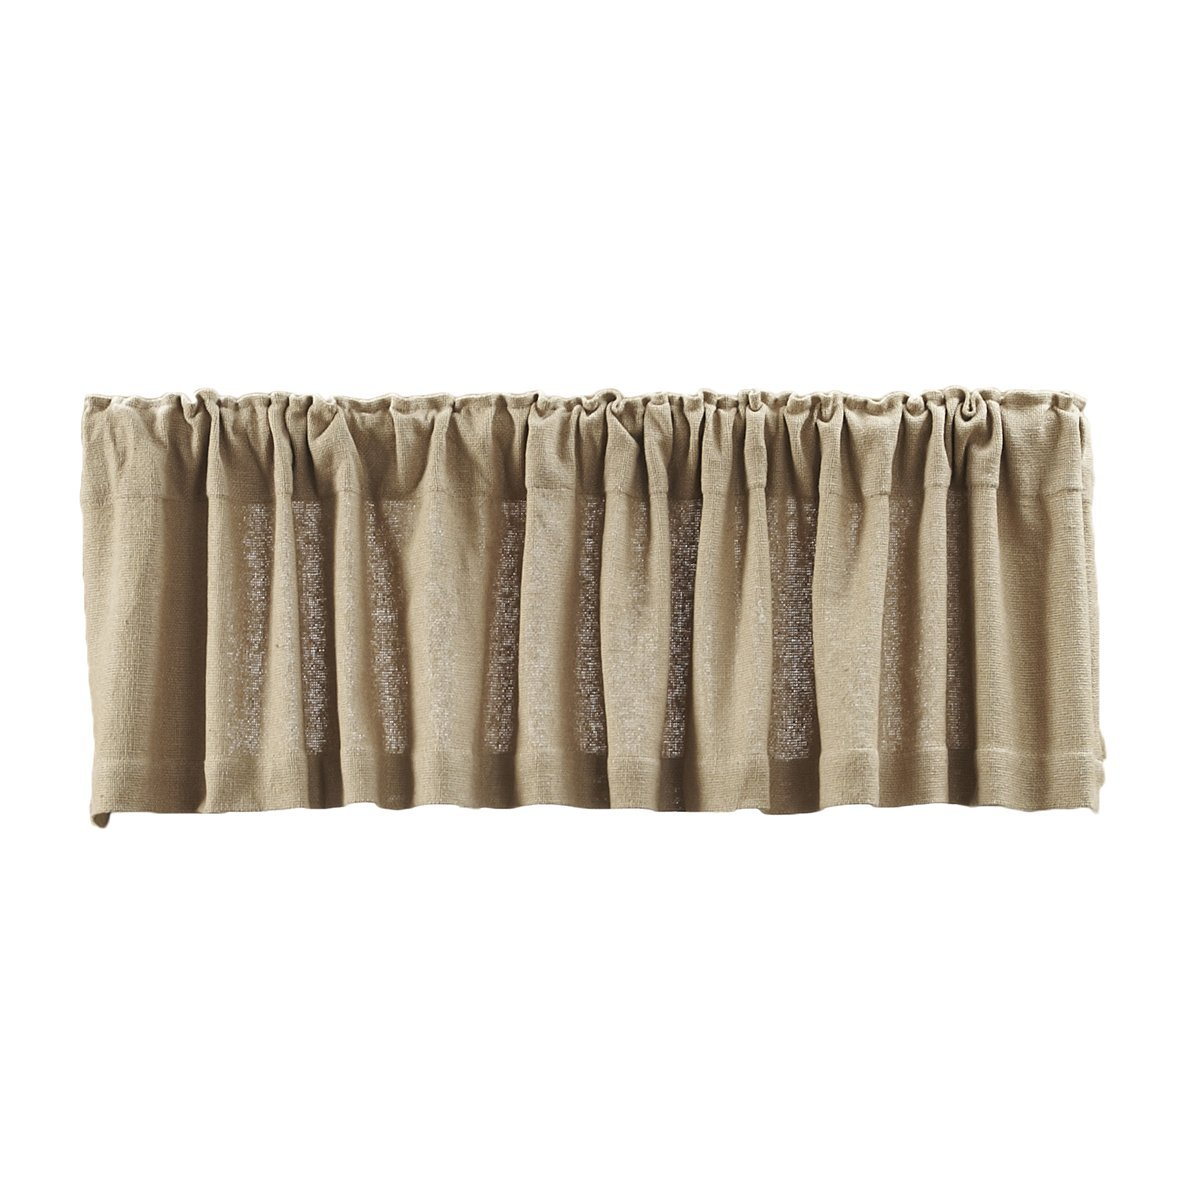 Lasting Impressions Burlap Natural Cotton Window Valance, 16 Inch By 72